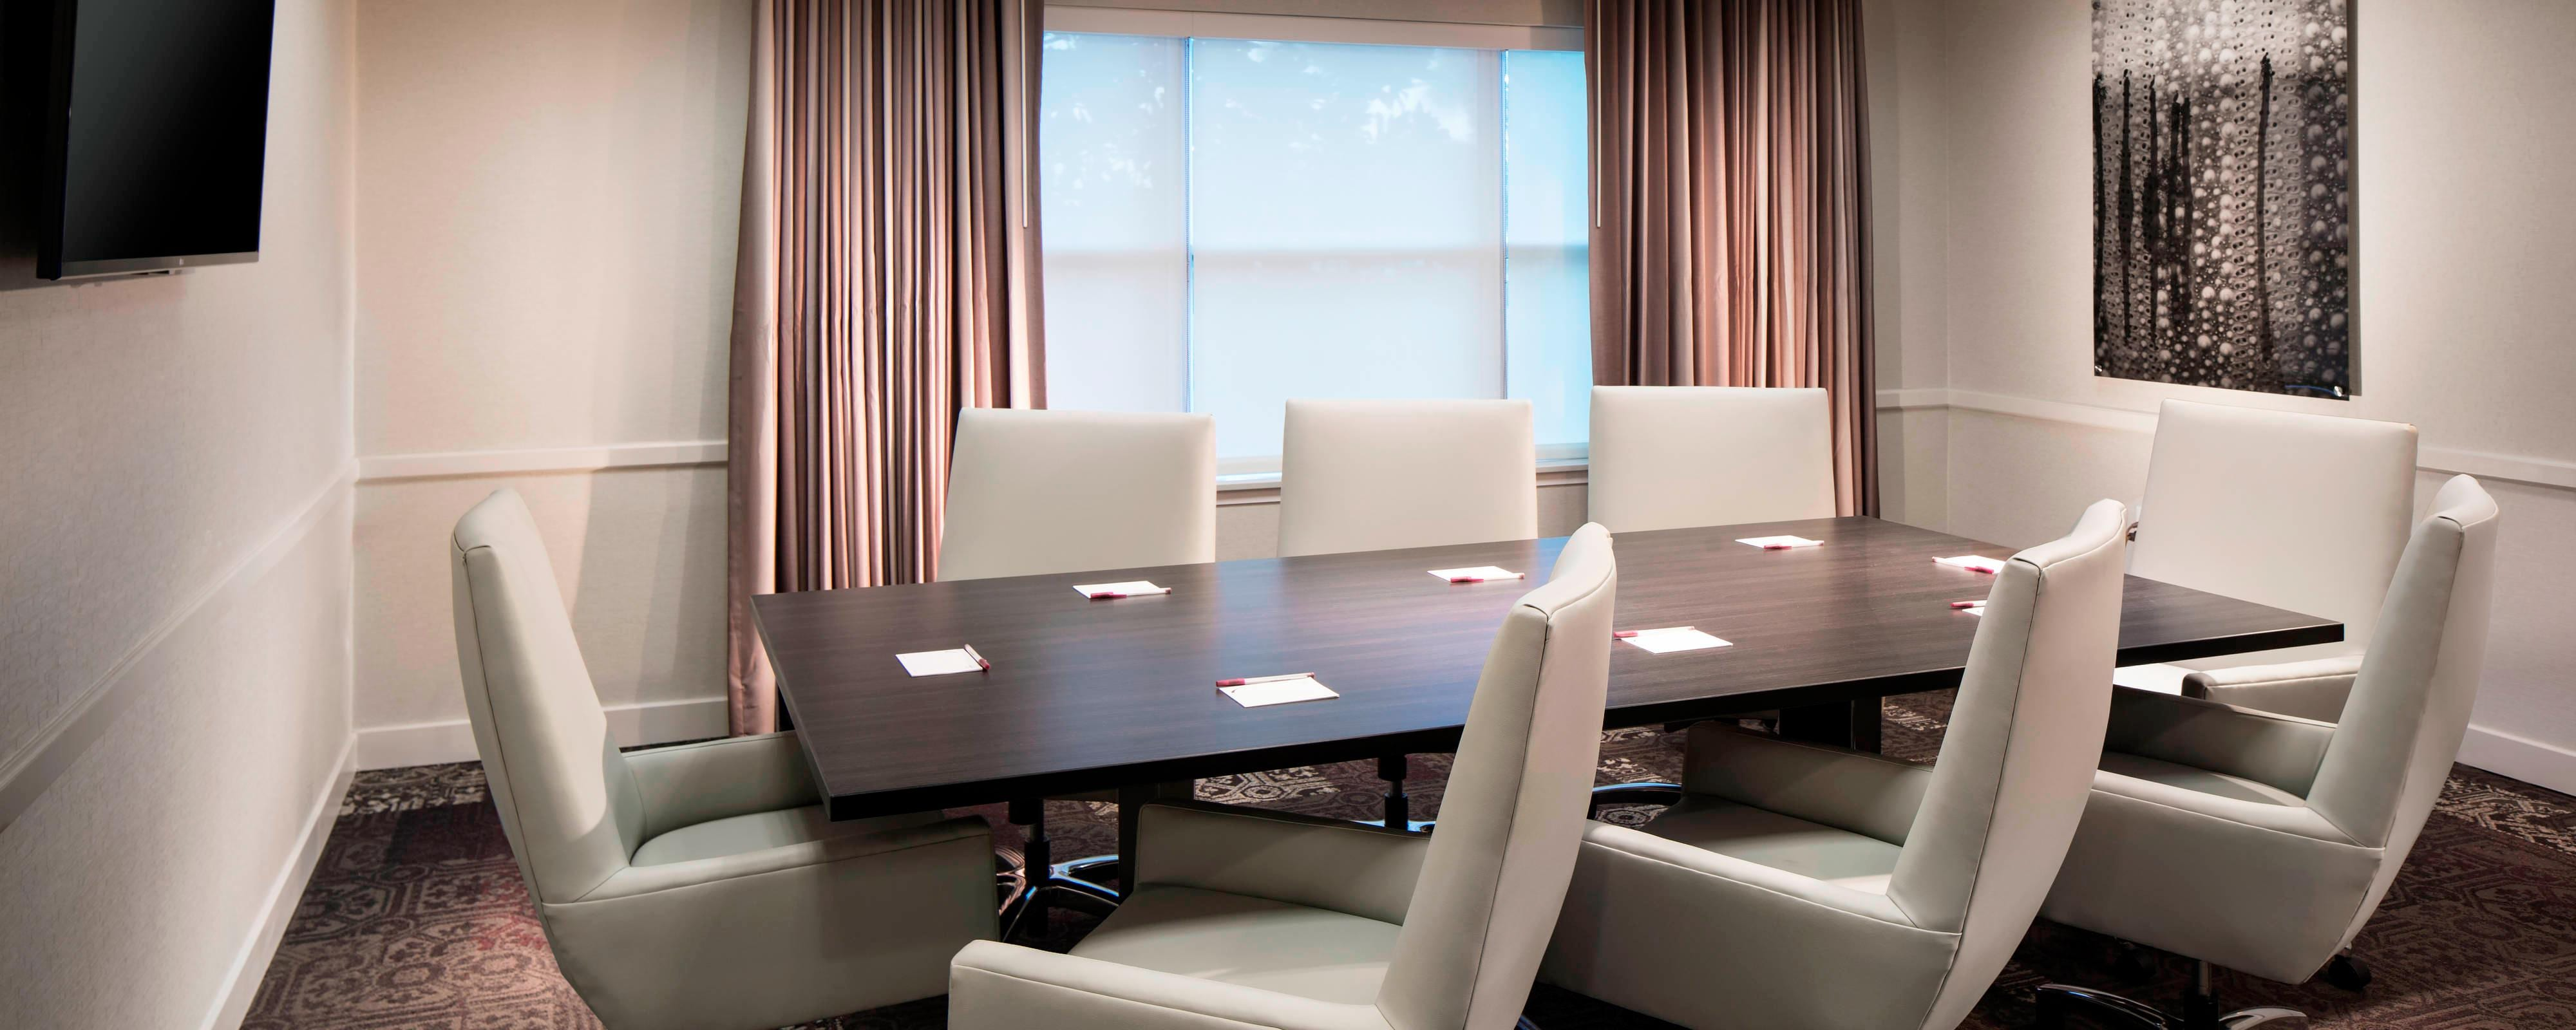 Meeting Rooms Melbourne Fl